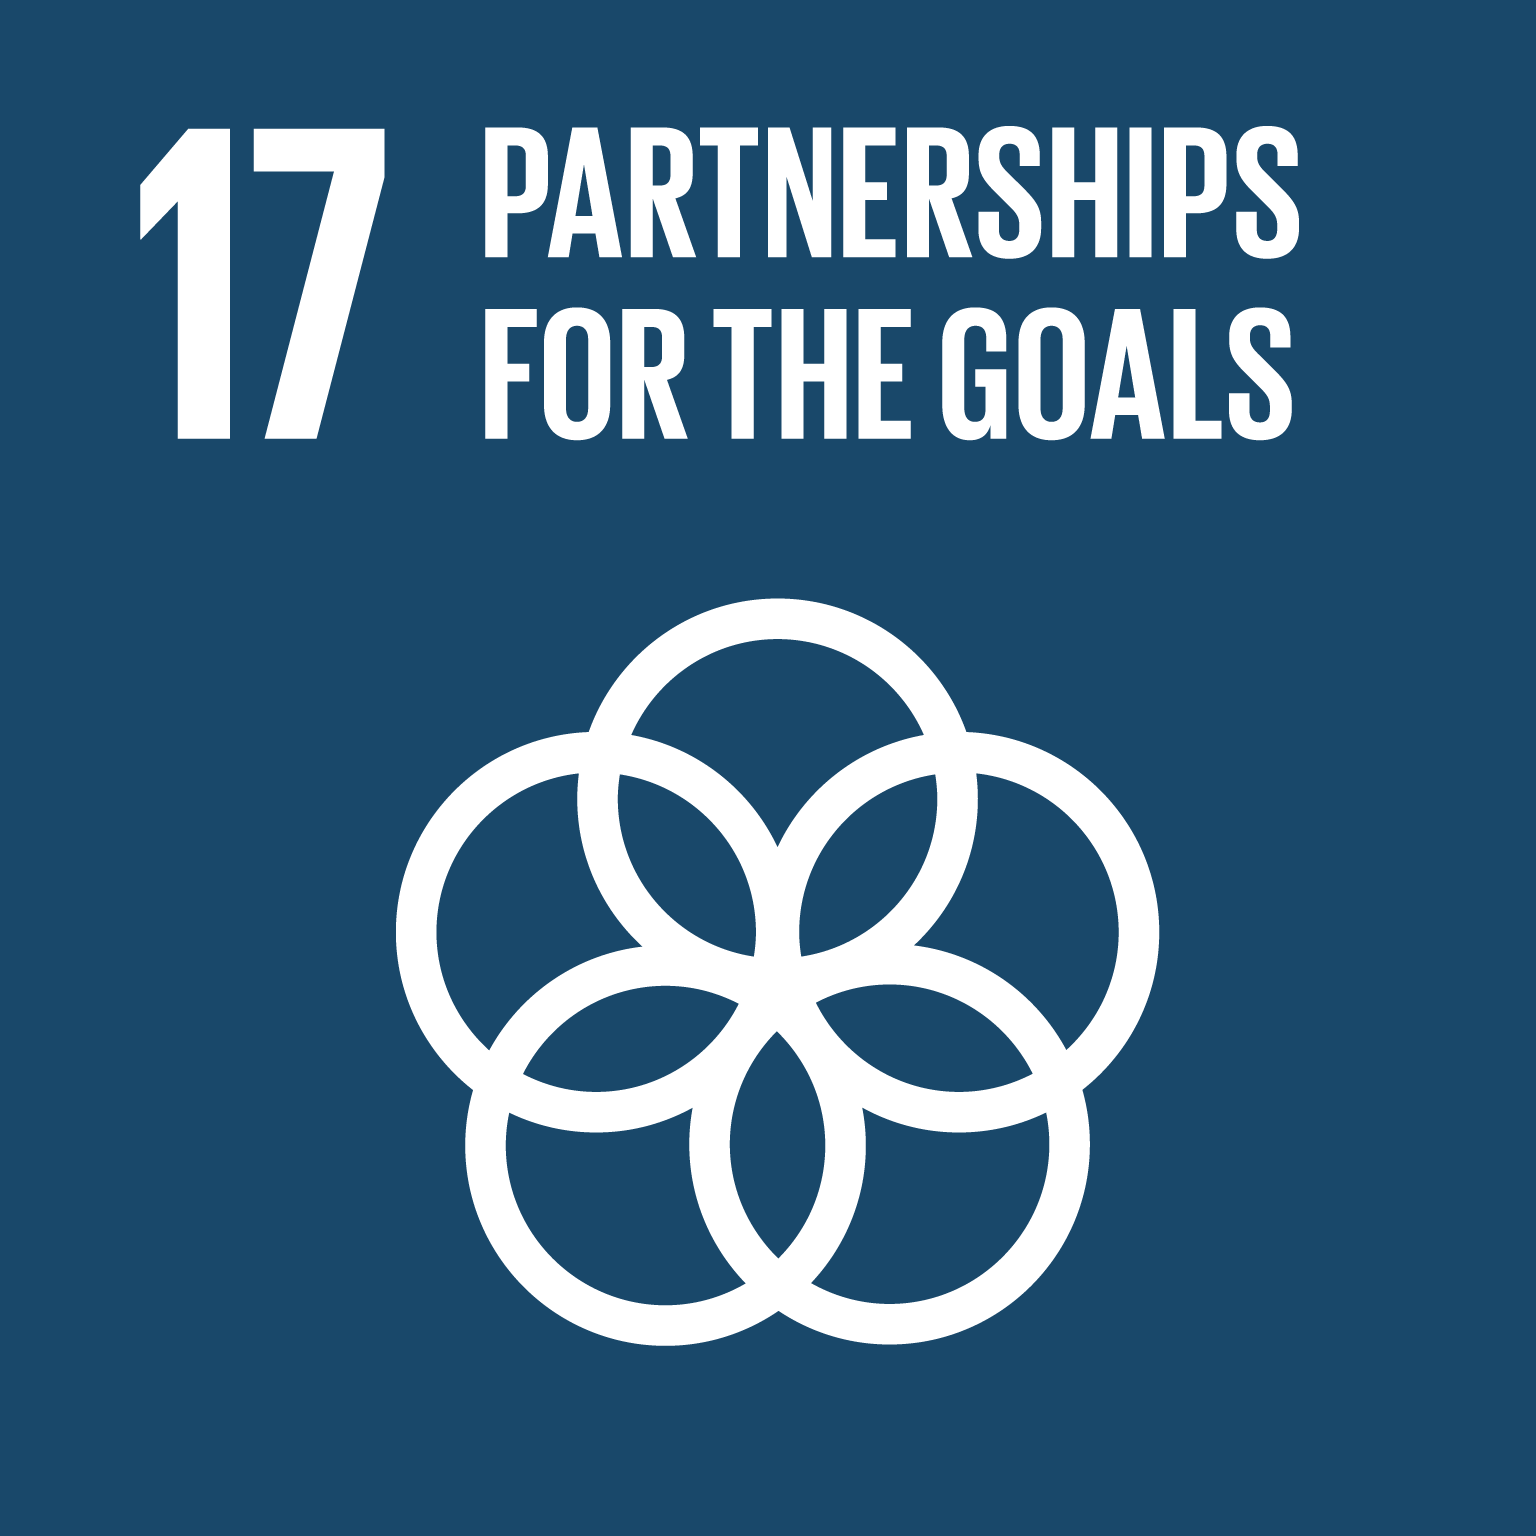 【SDGs logo】PARTNERSHIPS FOR THE GOALS